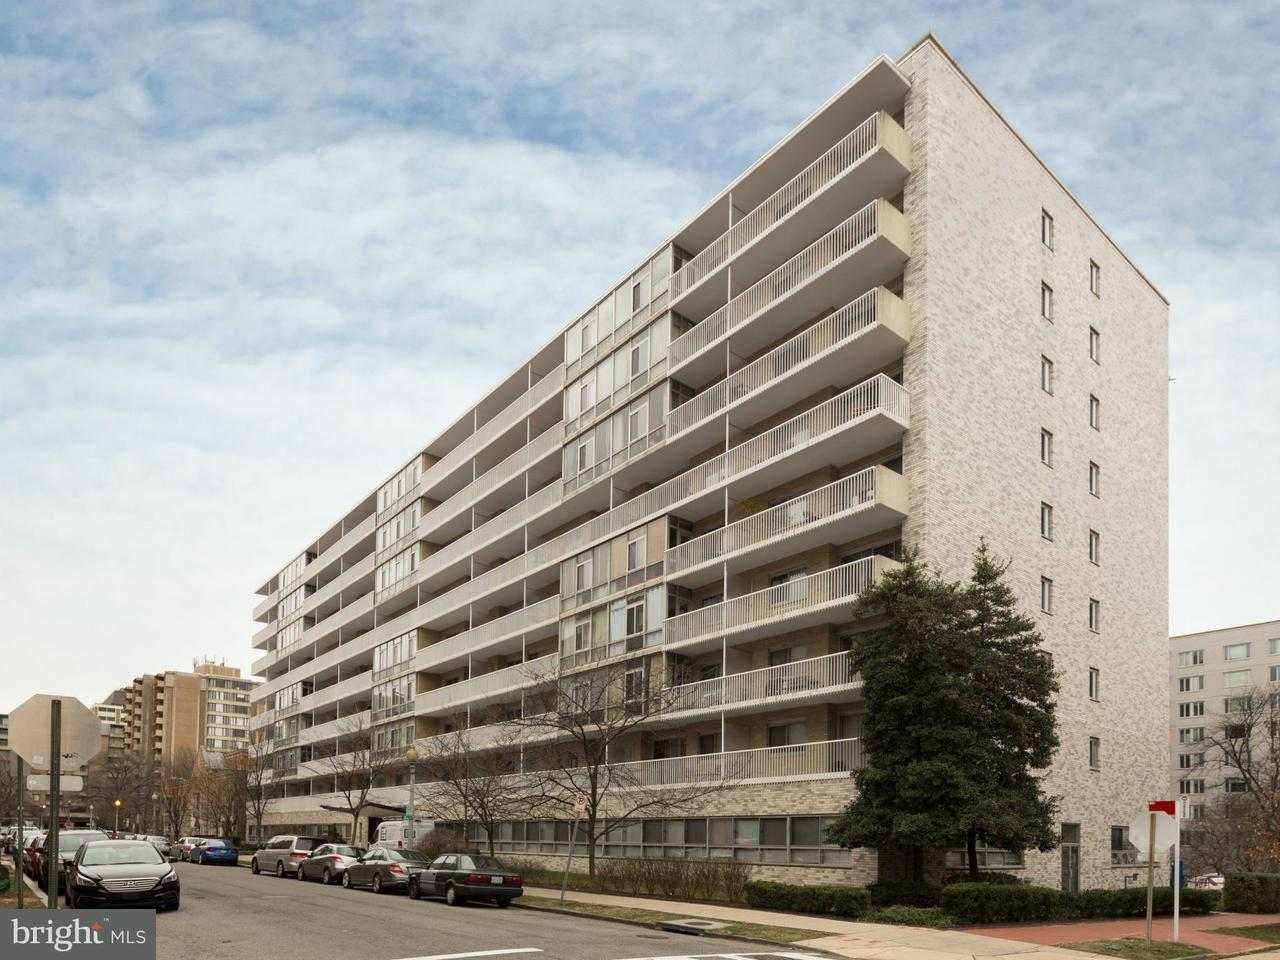 Comercial para Venda às 730 24TH ST NW #1 730 24TH ST NW #1 Washington, Distrito De Columbia 20037 Estados Unidos